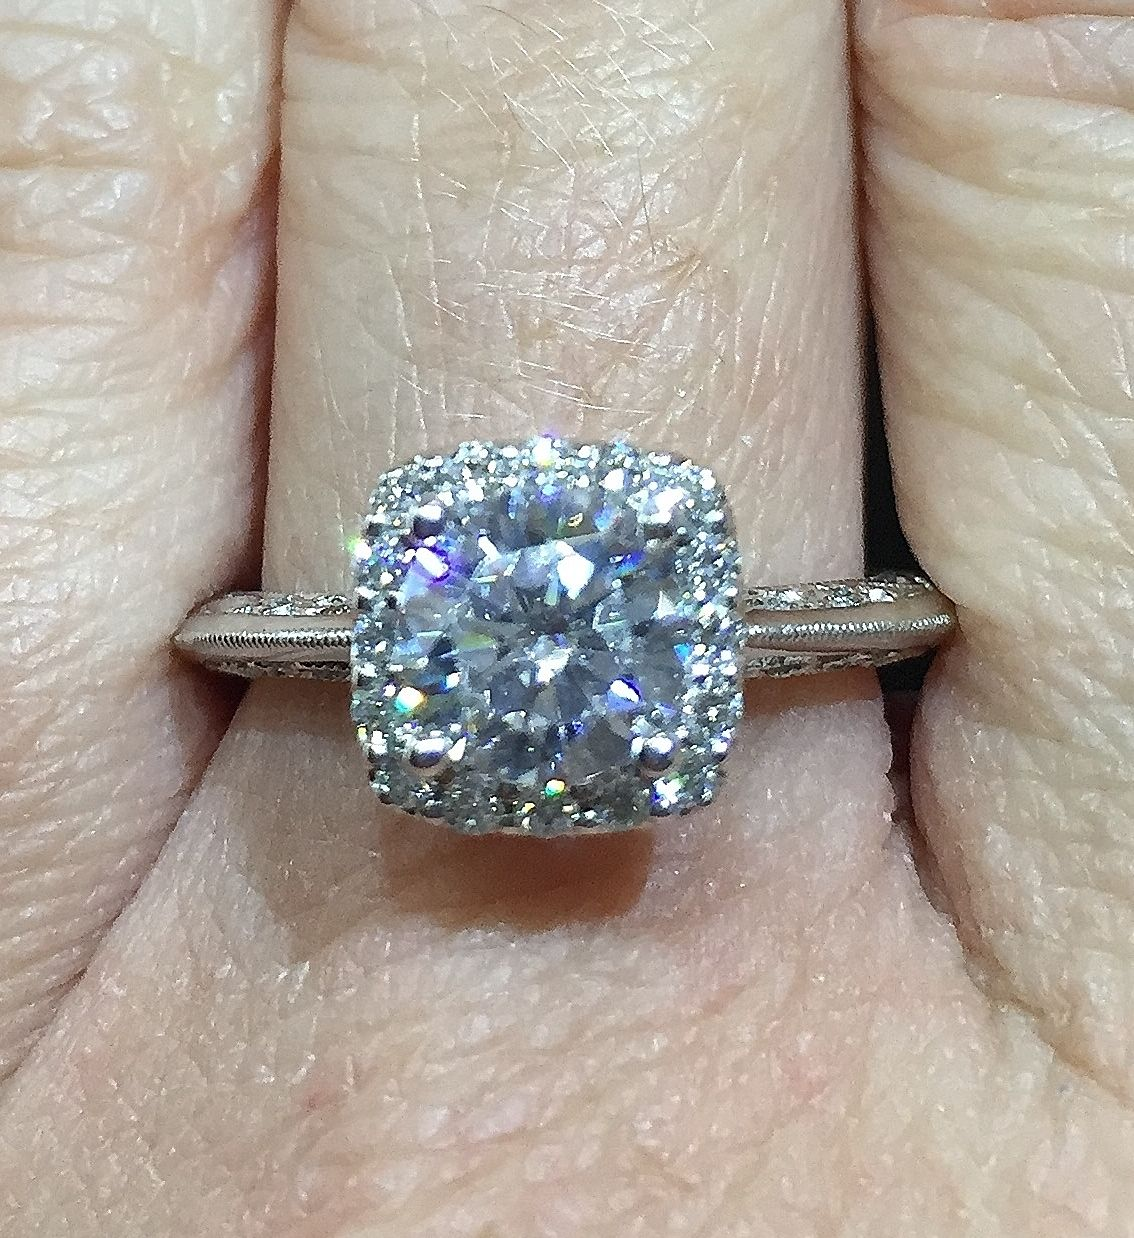 Artcarved 14k White Gold Engagement Ring Mounting Inspired By Original Designs From 14k White Gold Engagement Rings Engagement Ring Mountings Favorite Jewelry